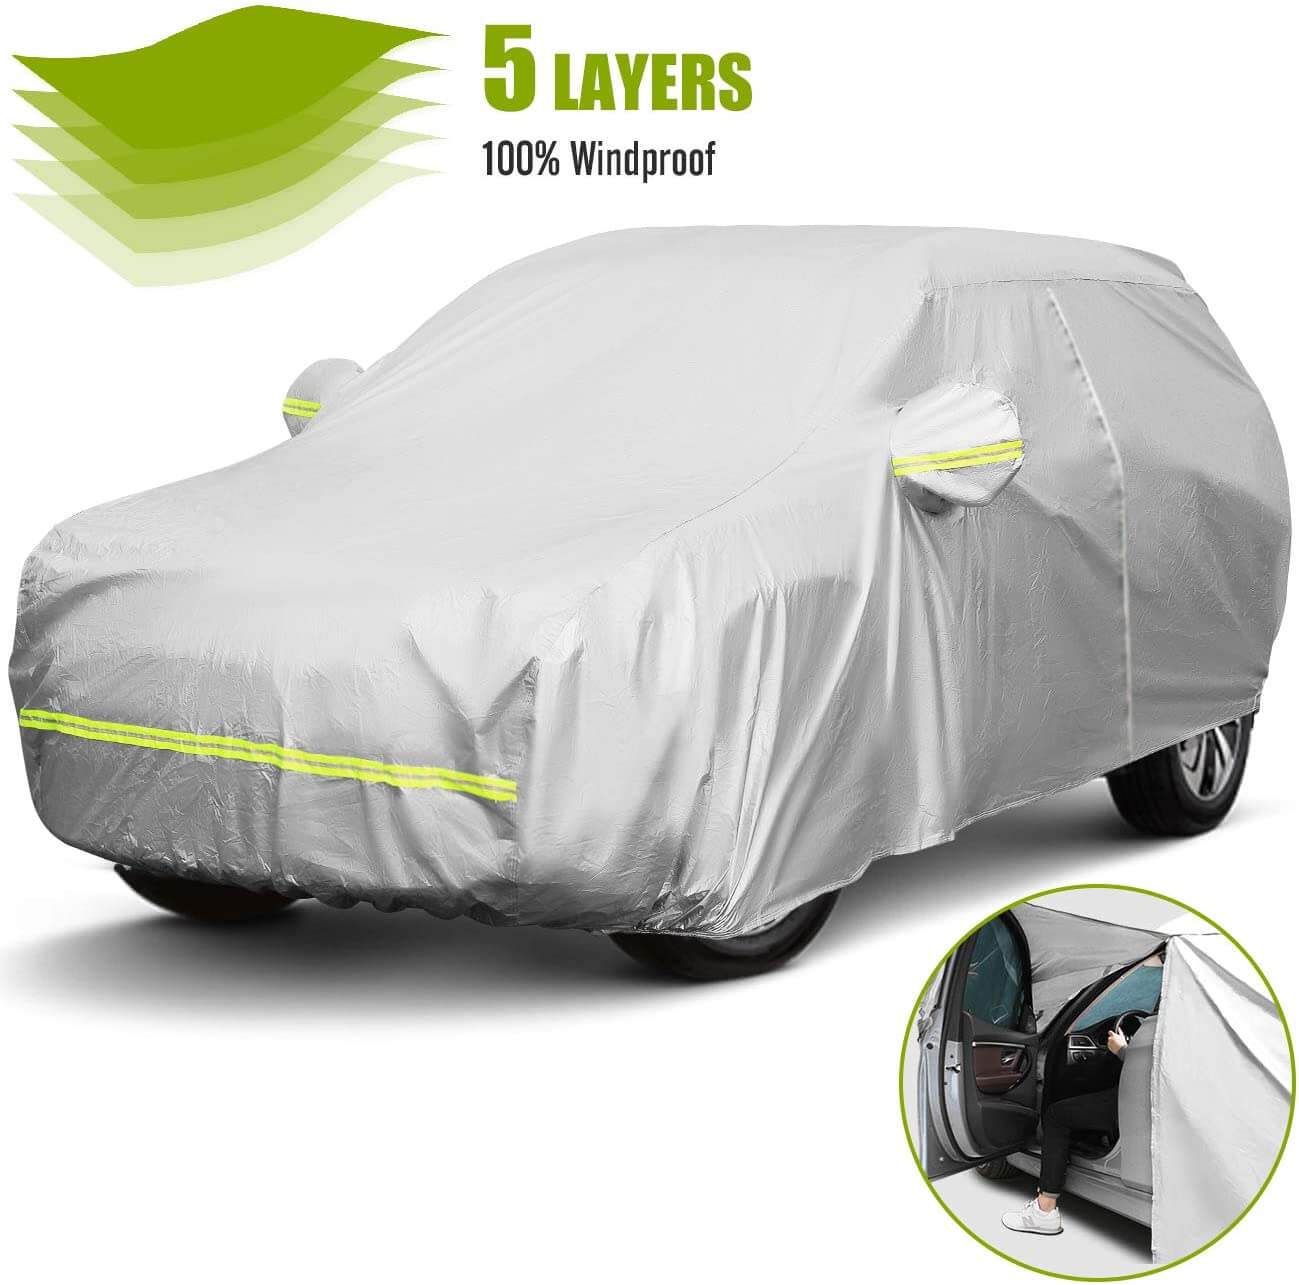 4. Favoto Car Cover Waterproof Windproof SUV Cover